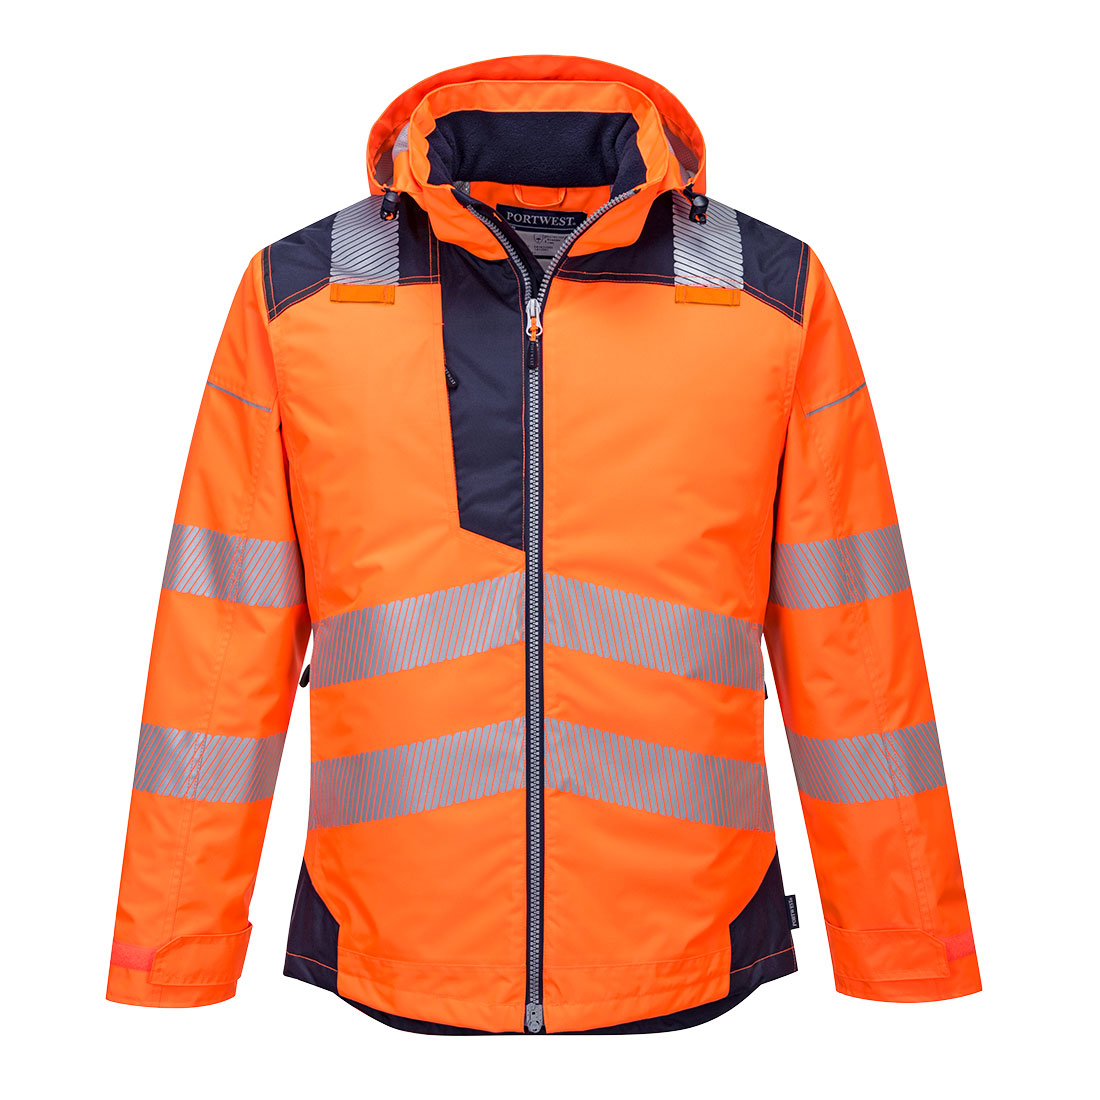 PW3 Hi-Vis Winter Jacket Orange 3 XL